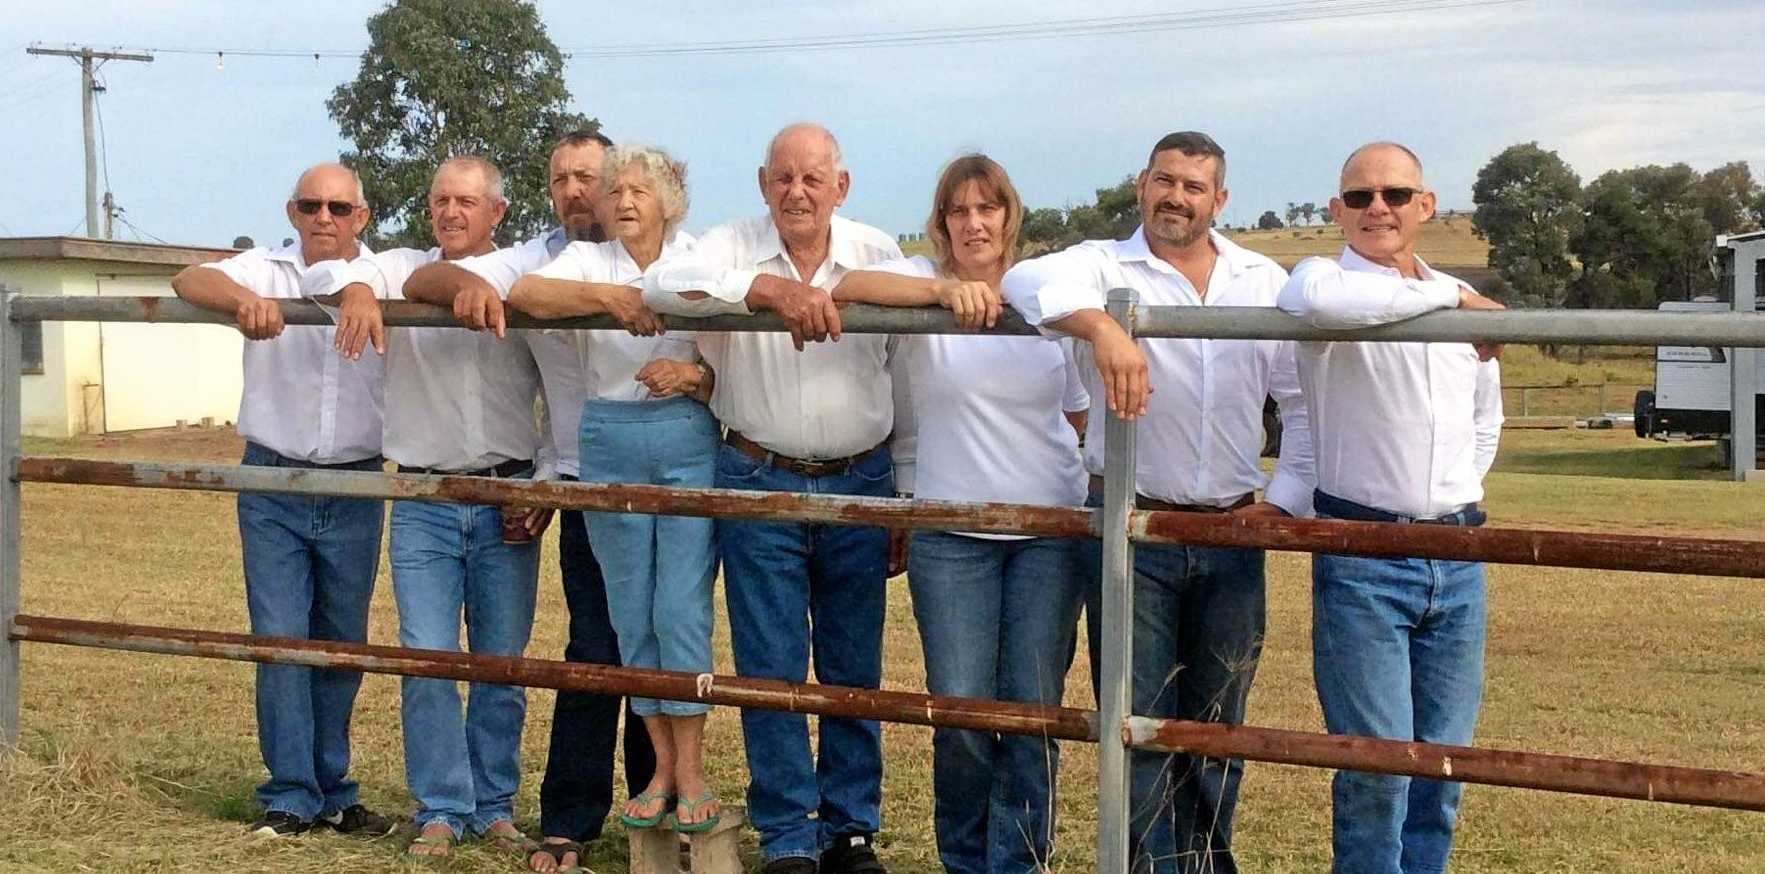 CELEBRATION: Joe and Lyle celebrated 60 years of marriage, with their six kids at the Avis farm.